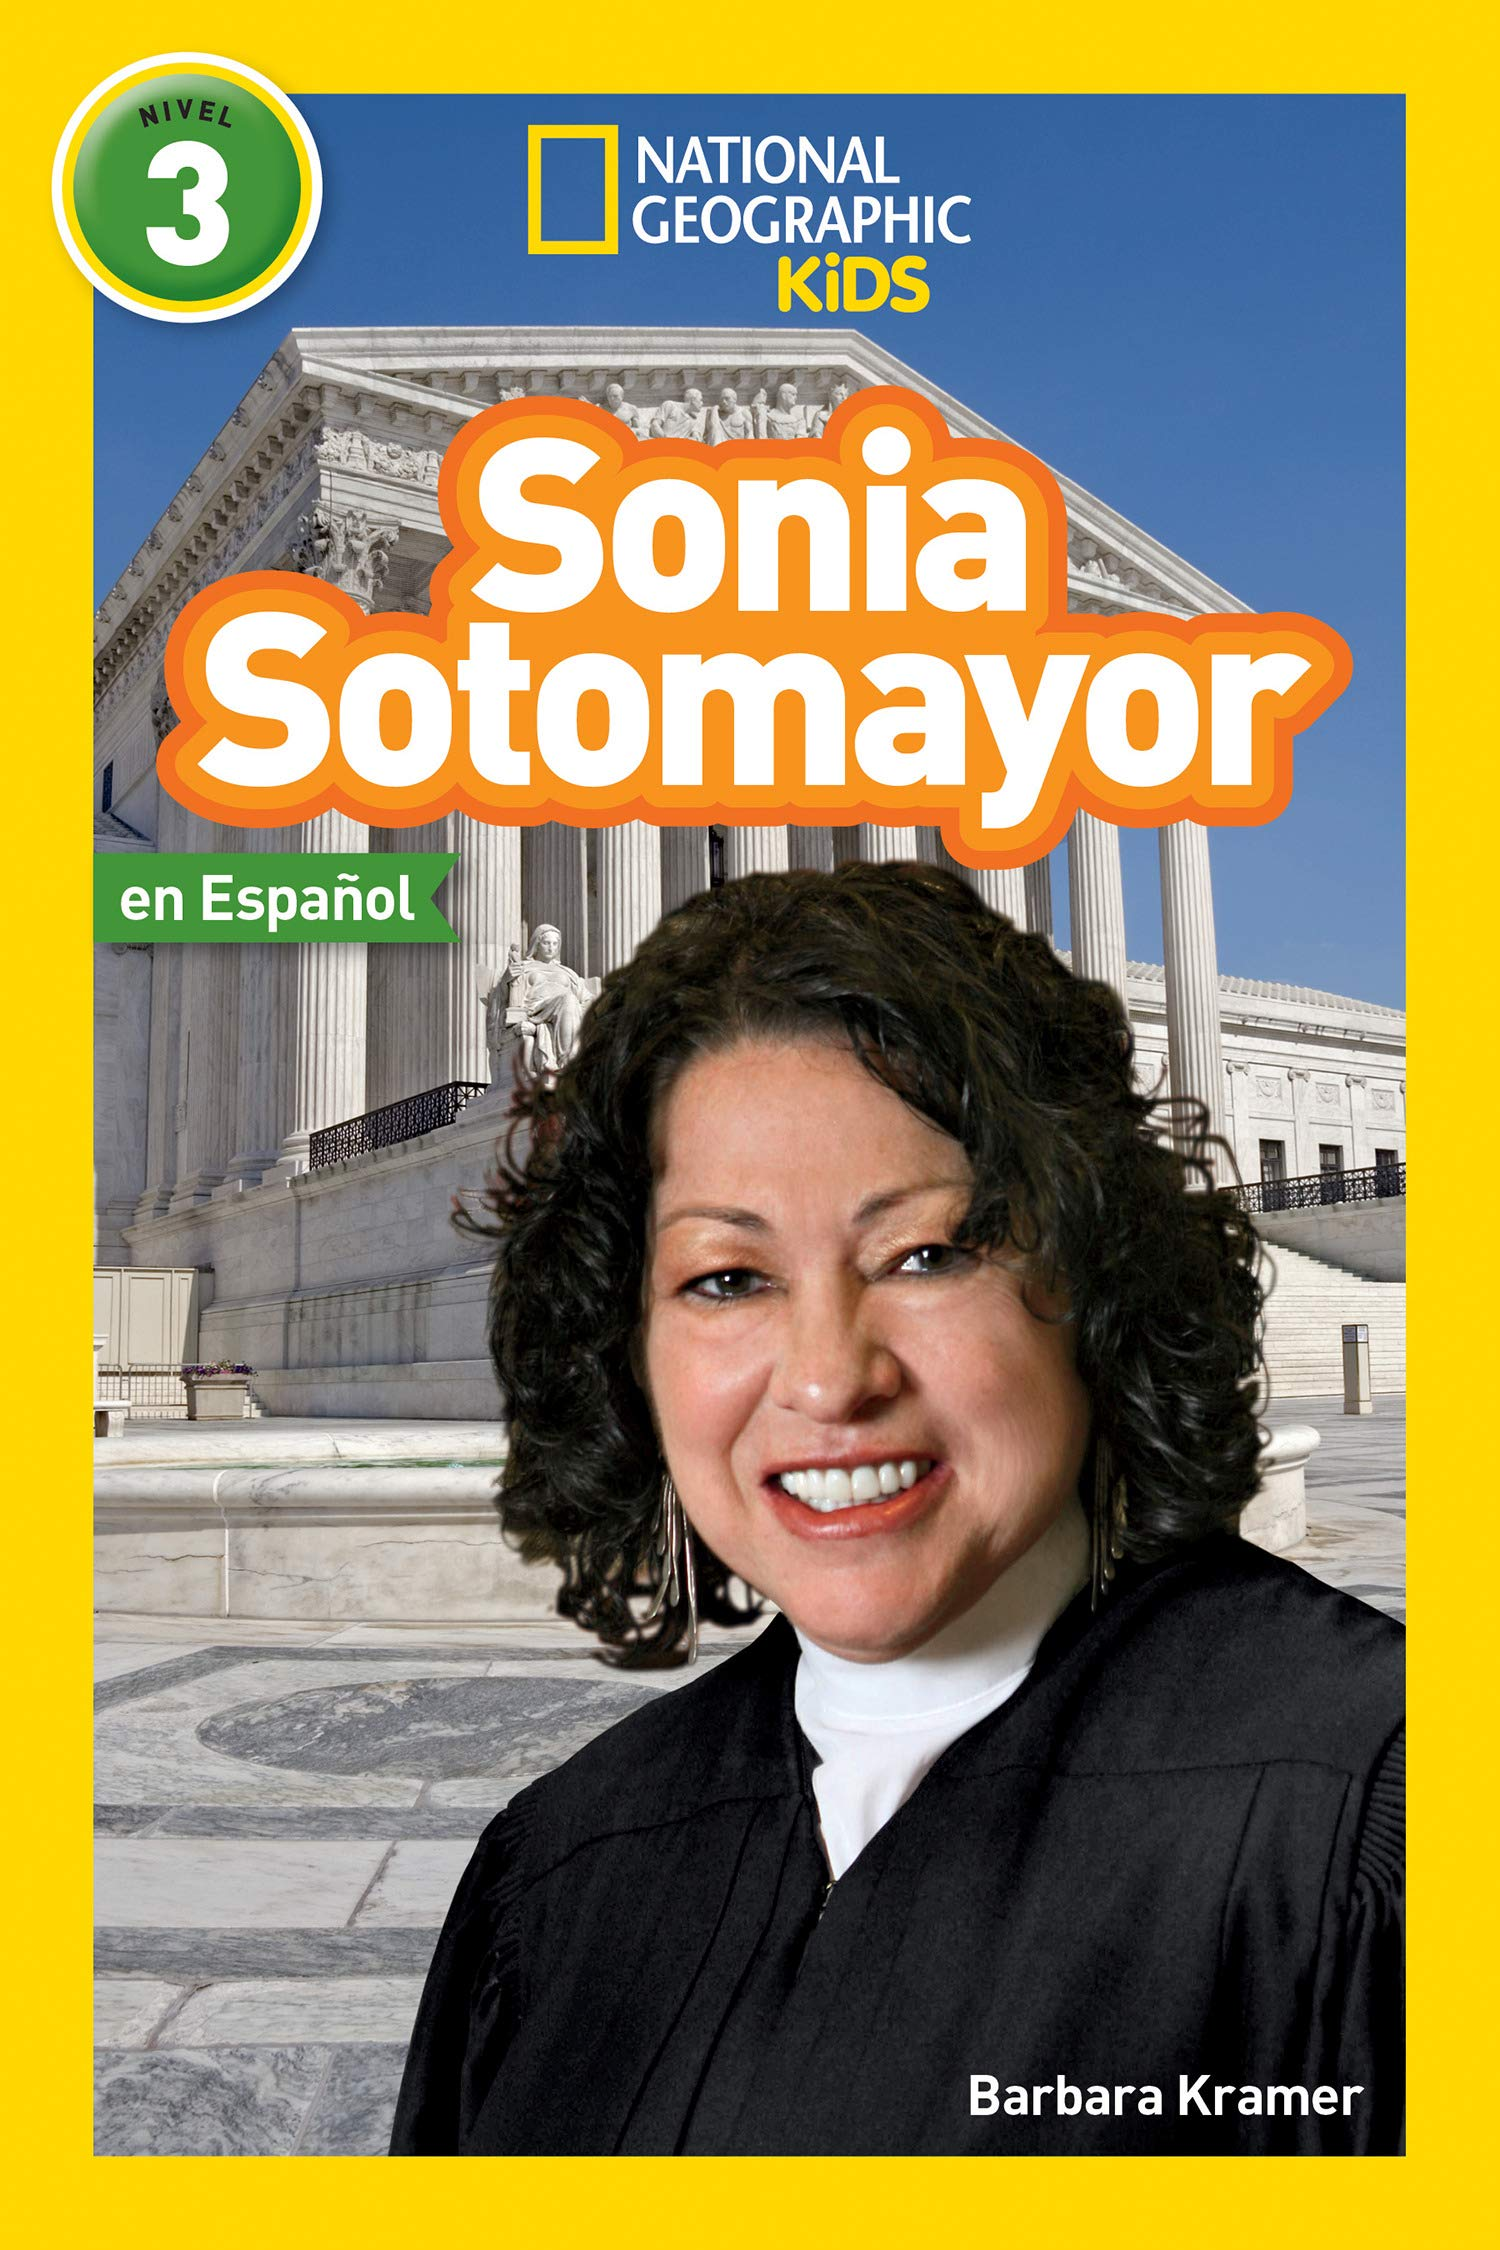 National Geographic Readers Sonia Sotomayor L3 Spanish Readers Bios Spanish Edition 9781426335174 Kramer Barbara Books